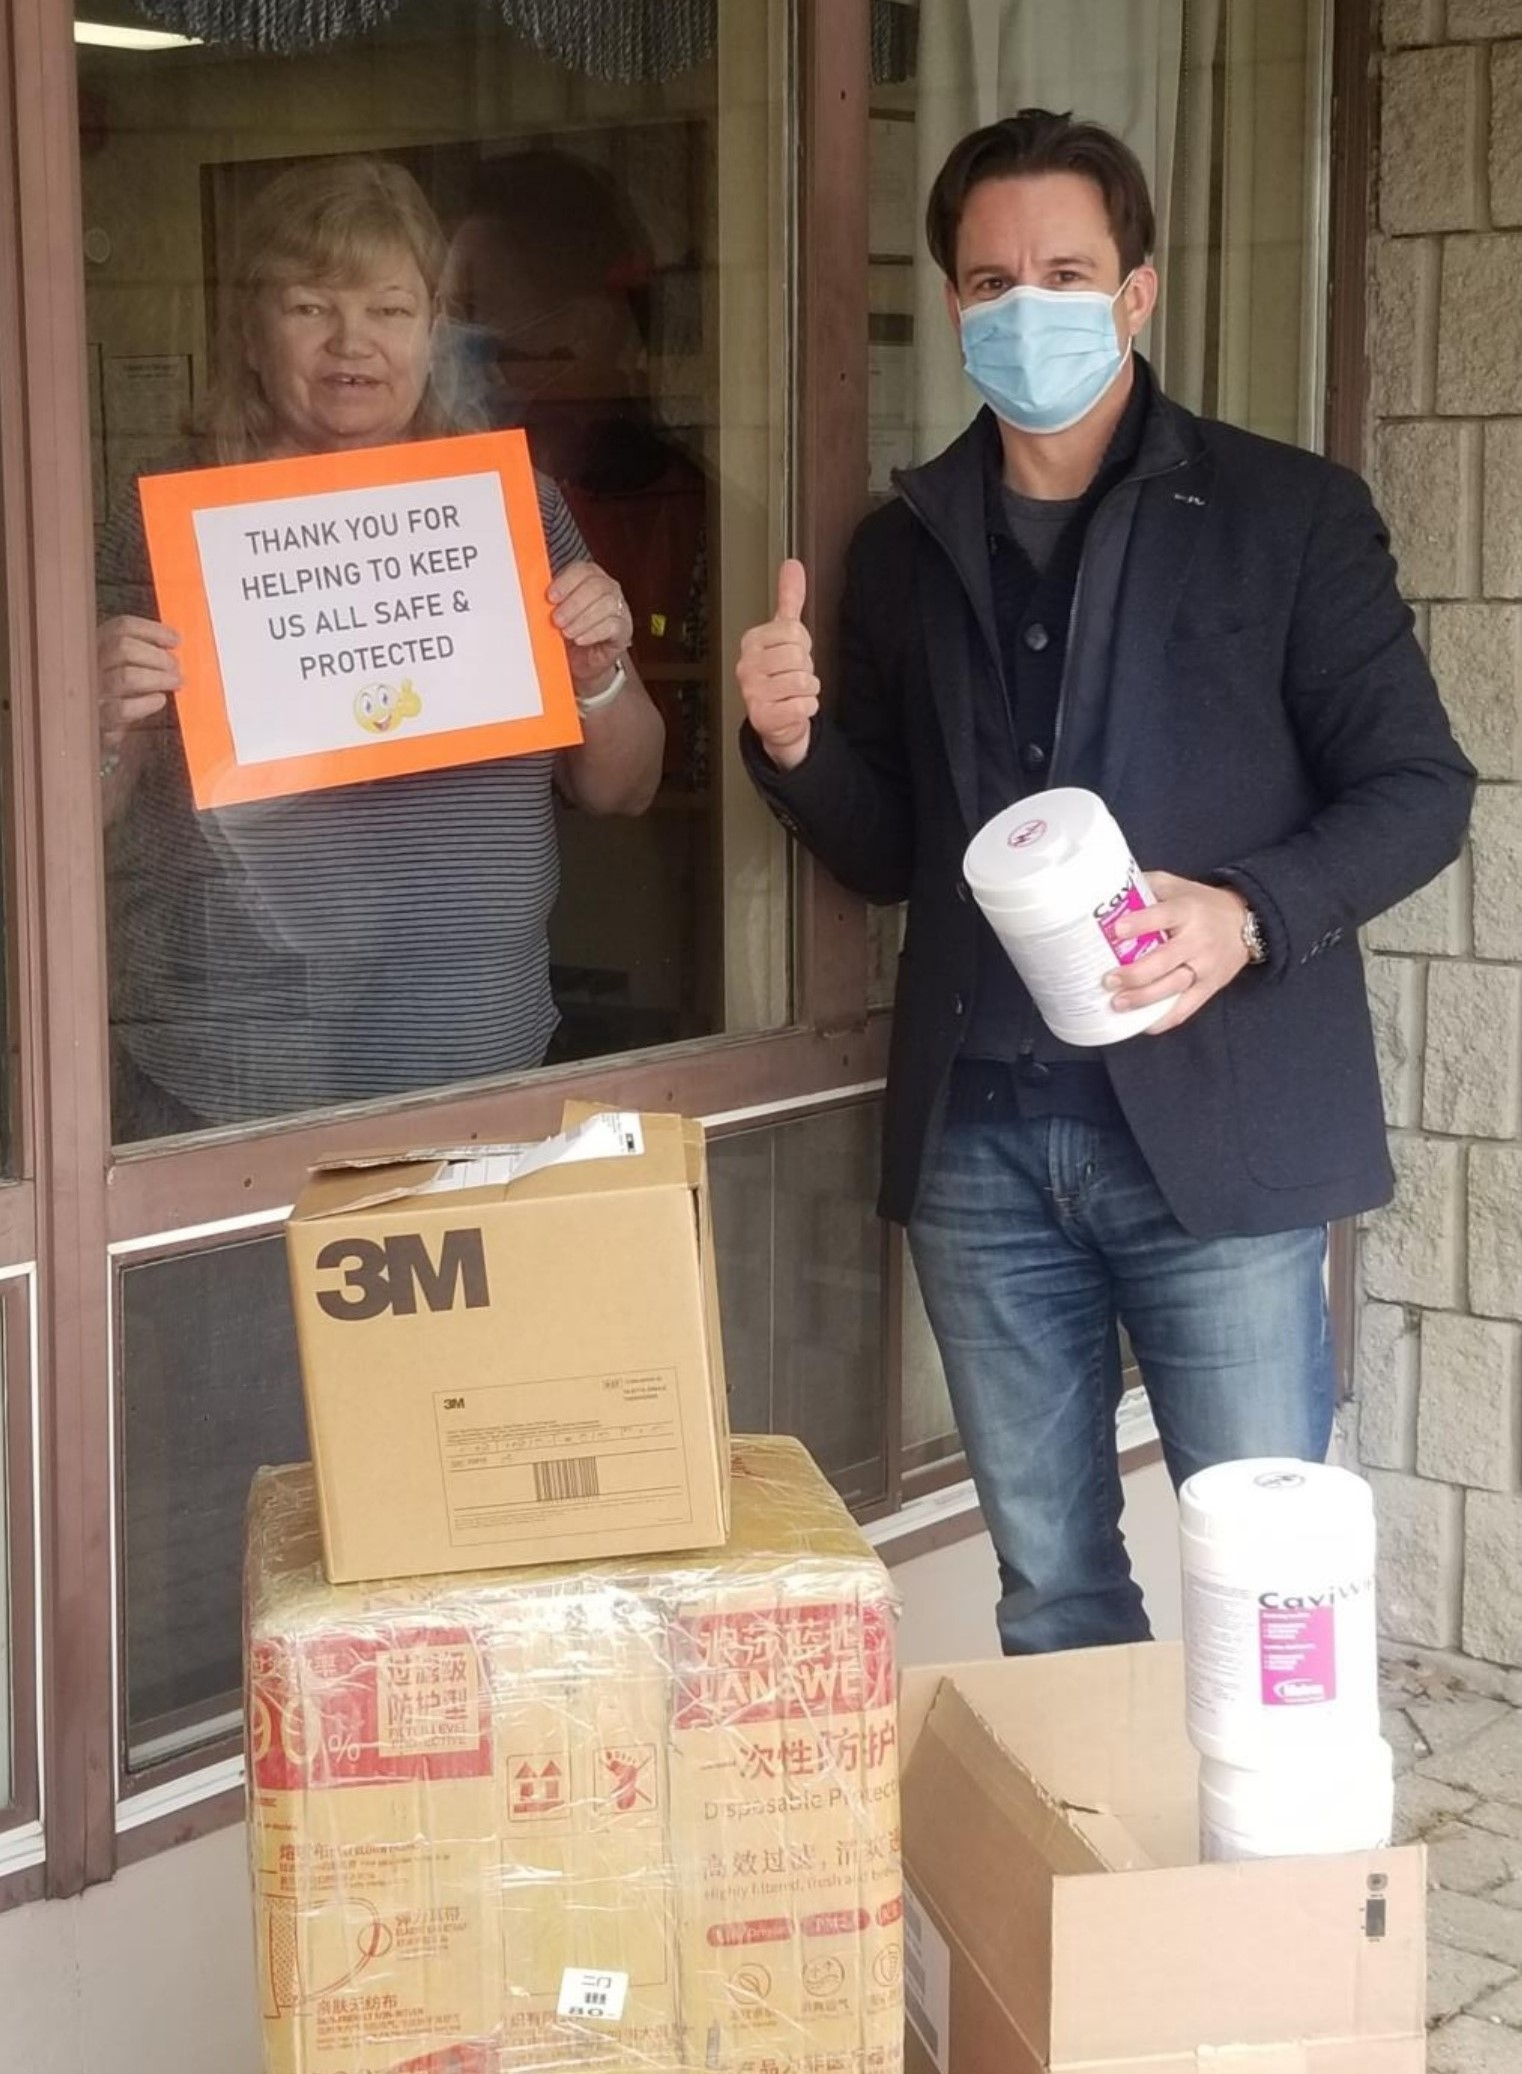 peopleCare CEO drops off PPE and supplies to long-term care home while a resident stands next to the window with a sign